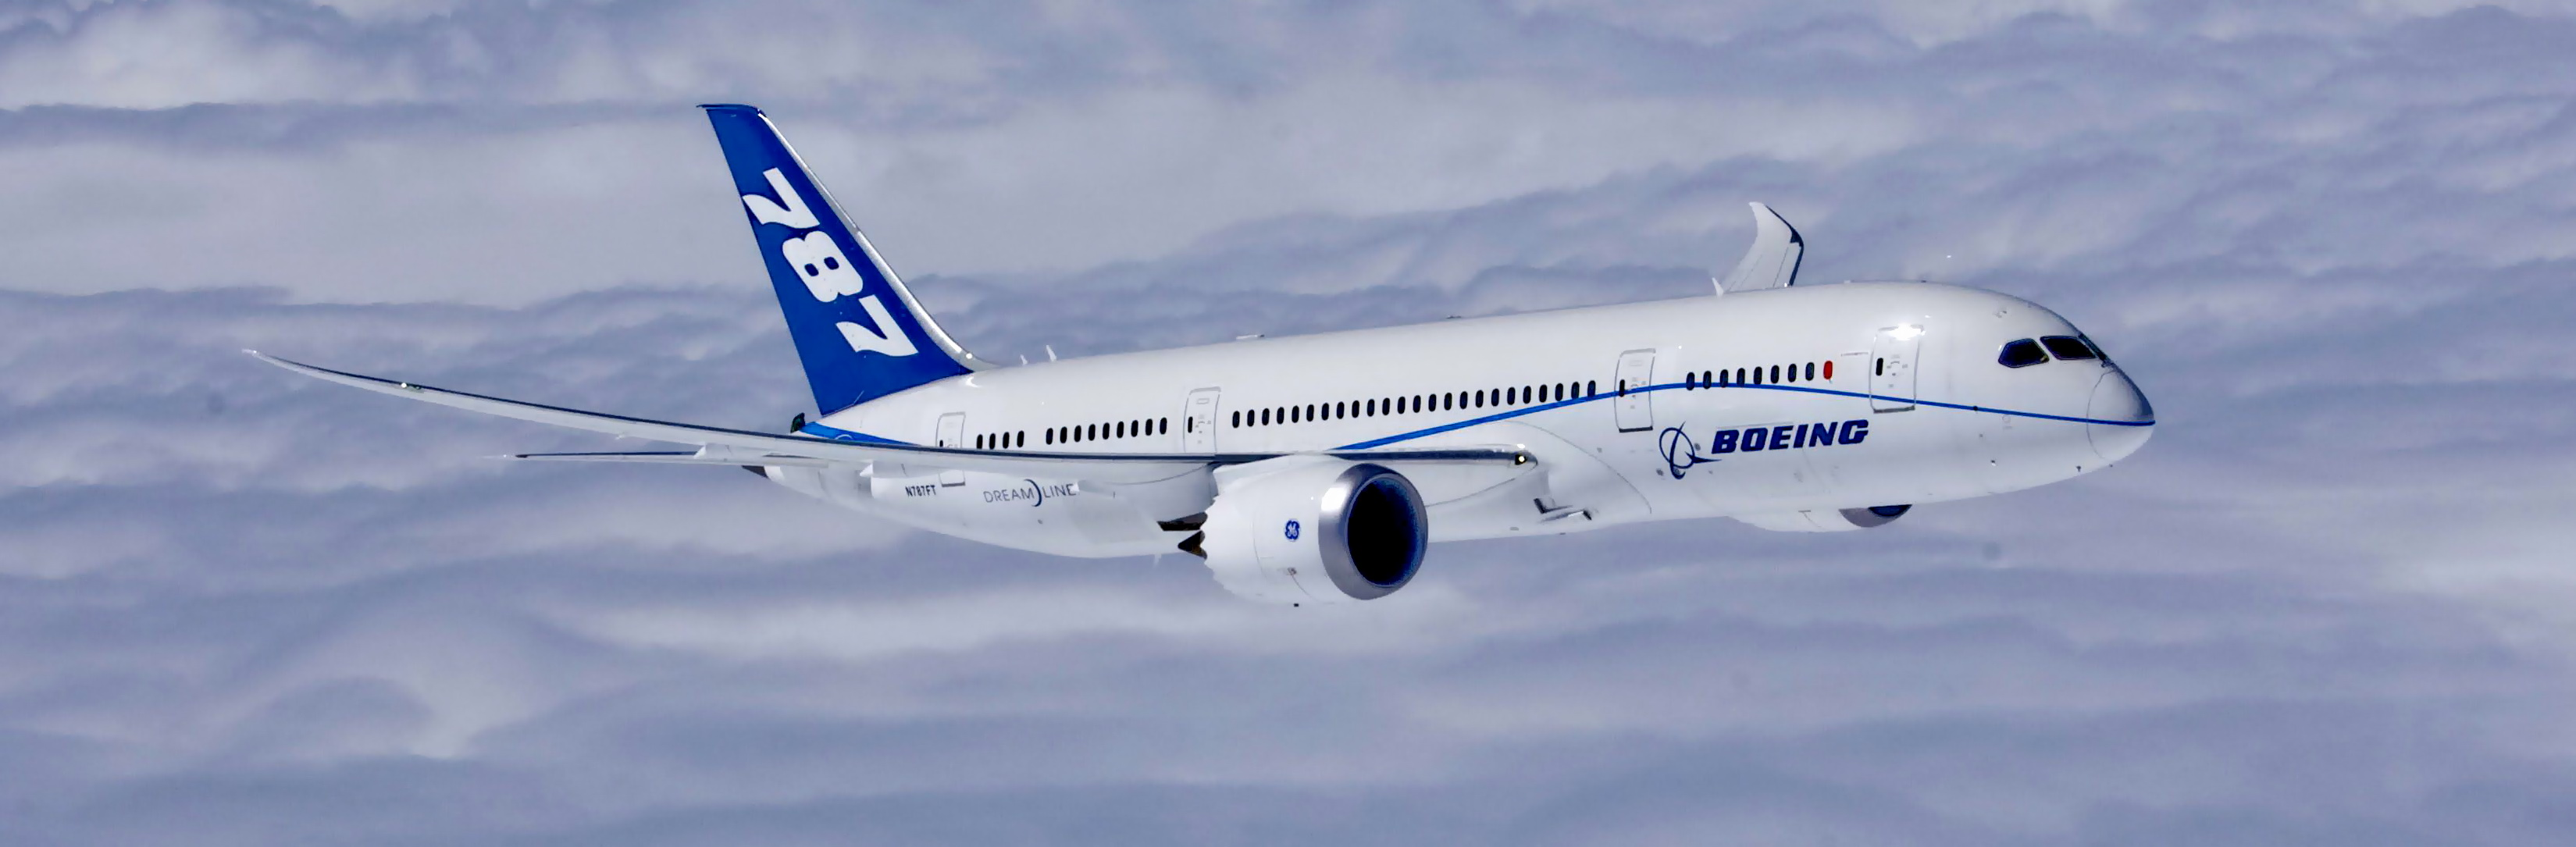 boeing_completes_first_flight_of_first_787_dreamliner_powered_by_ge_engines_boeing_787_8_3300x2640